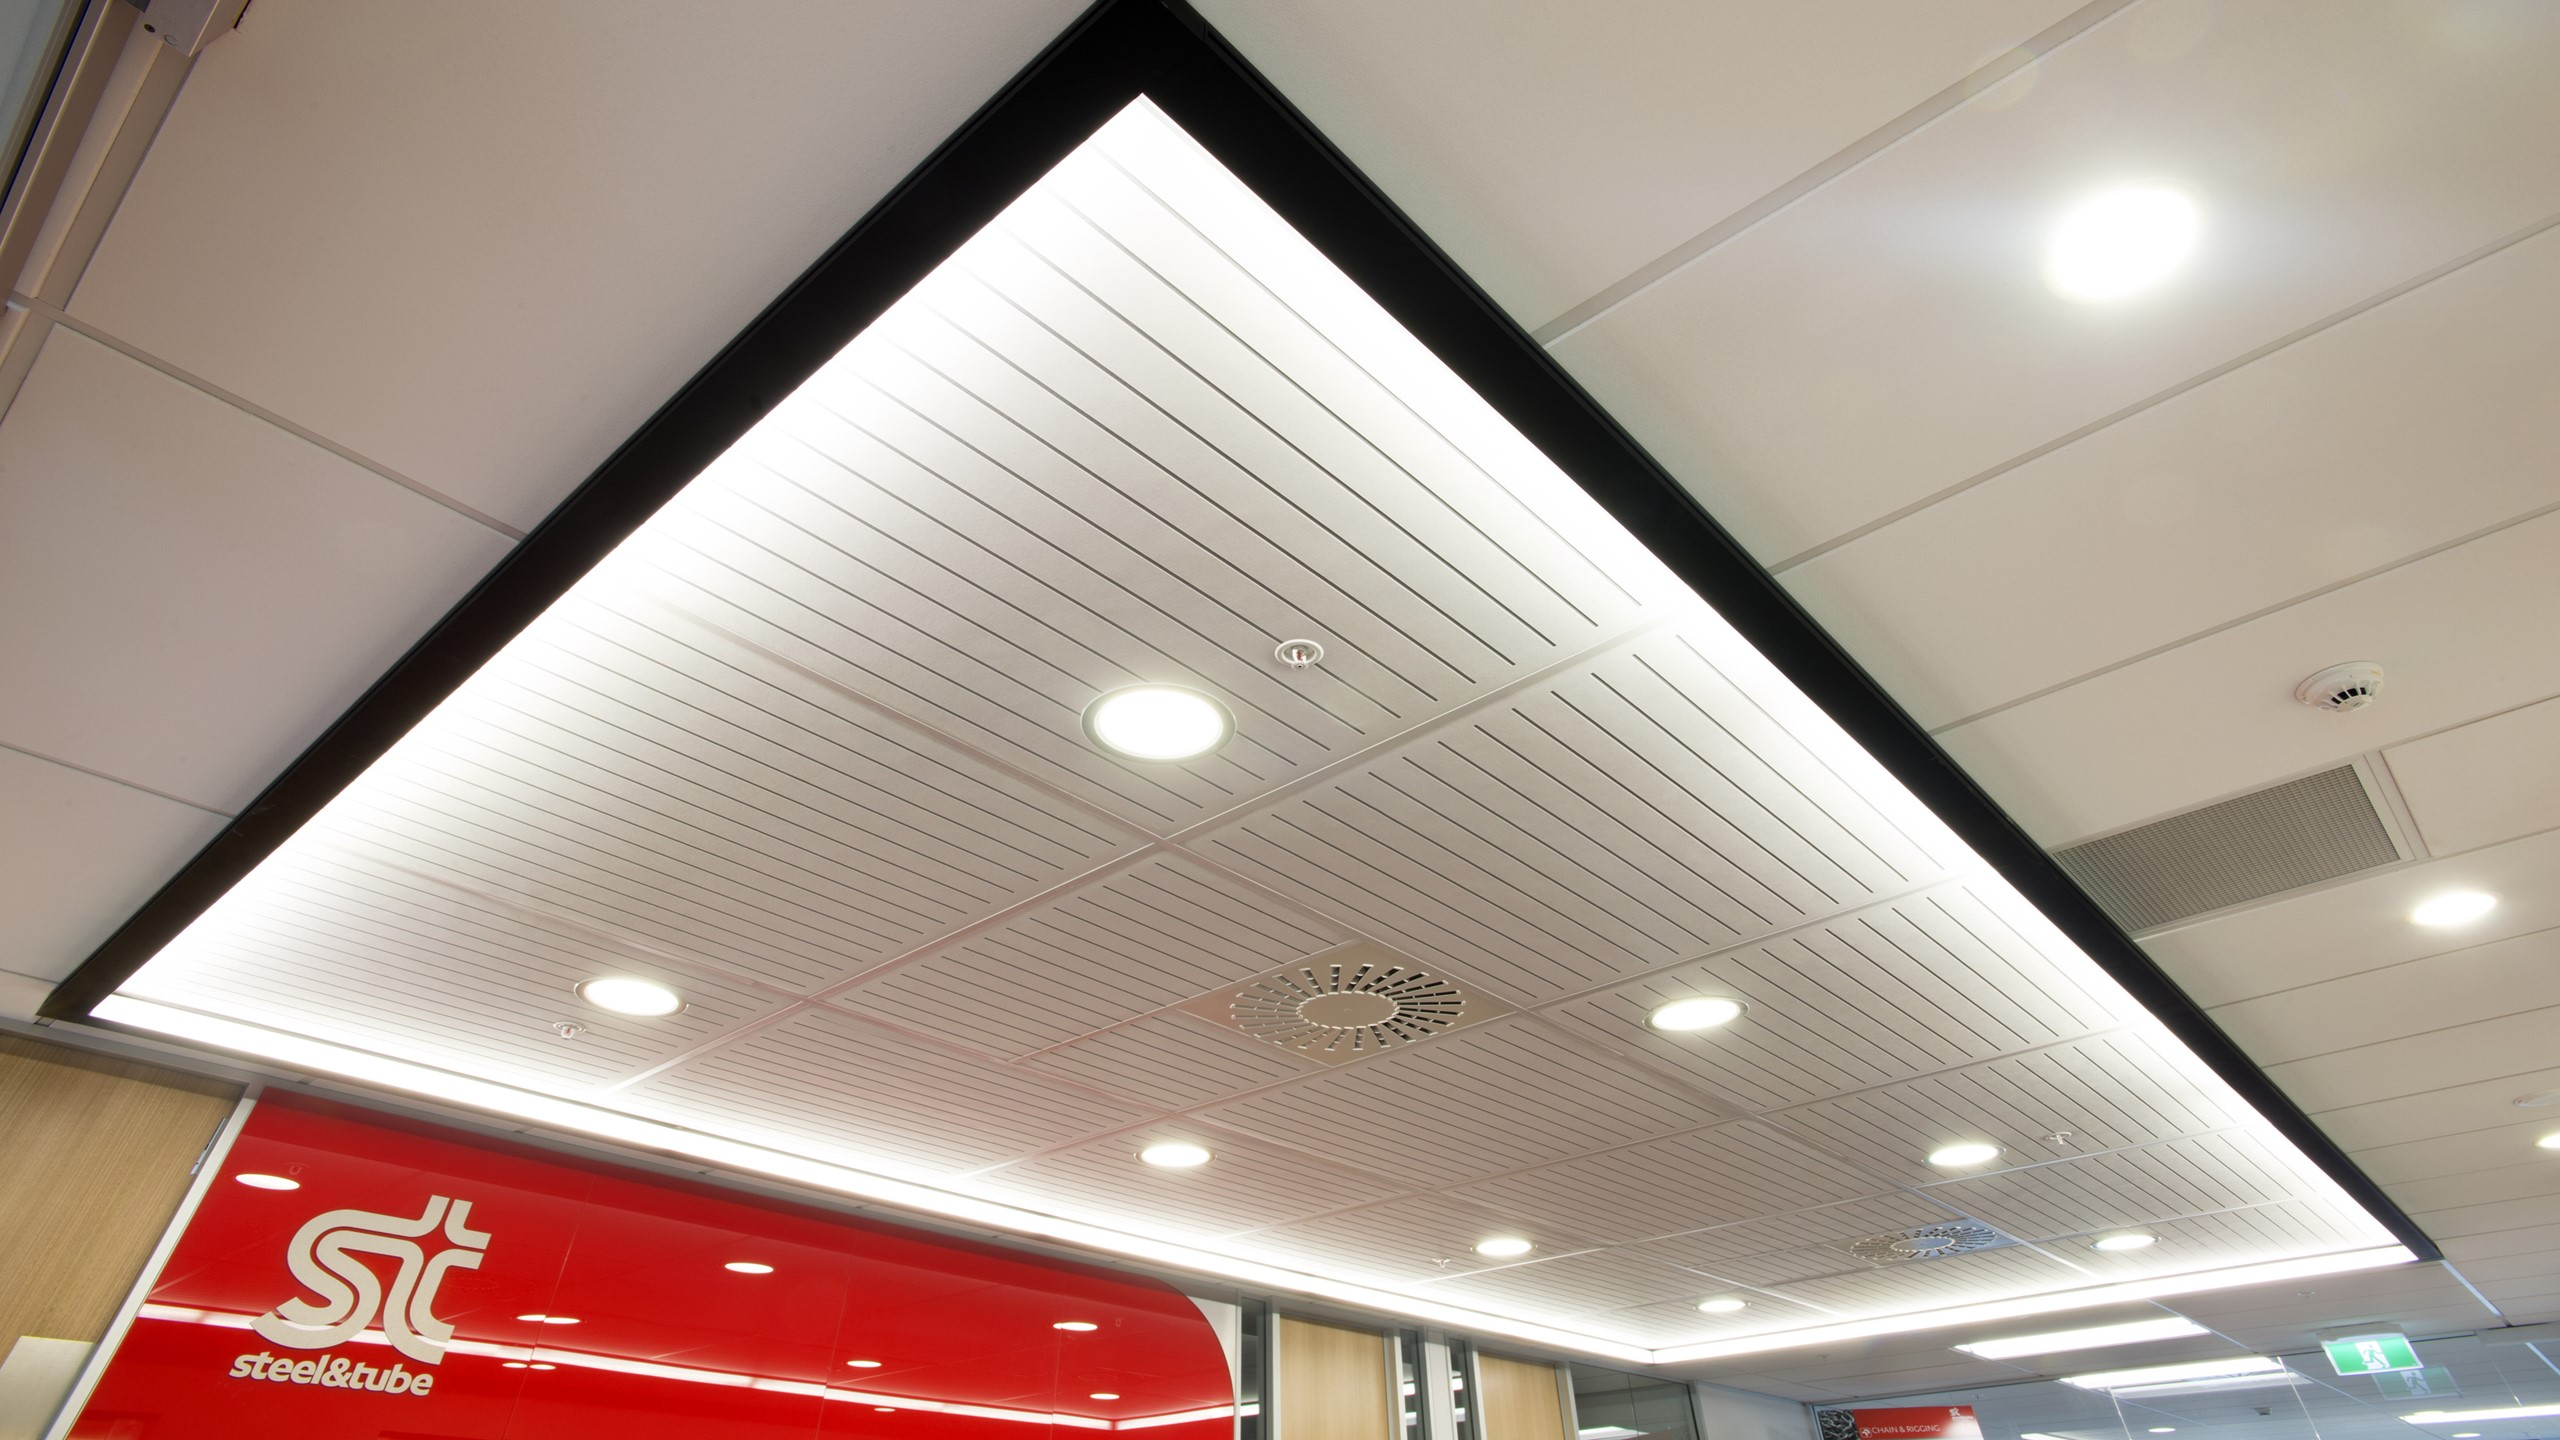 Steel & Tube HQ showing white Sonaris with S4 slot perforation pattern ceiling tiles installed into a suspended light raft above the reception area